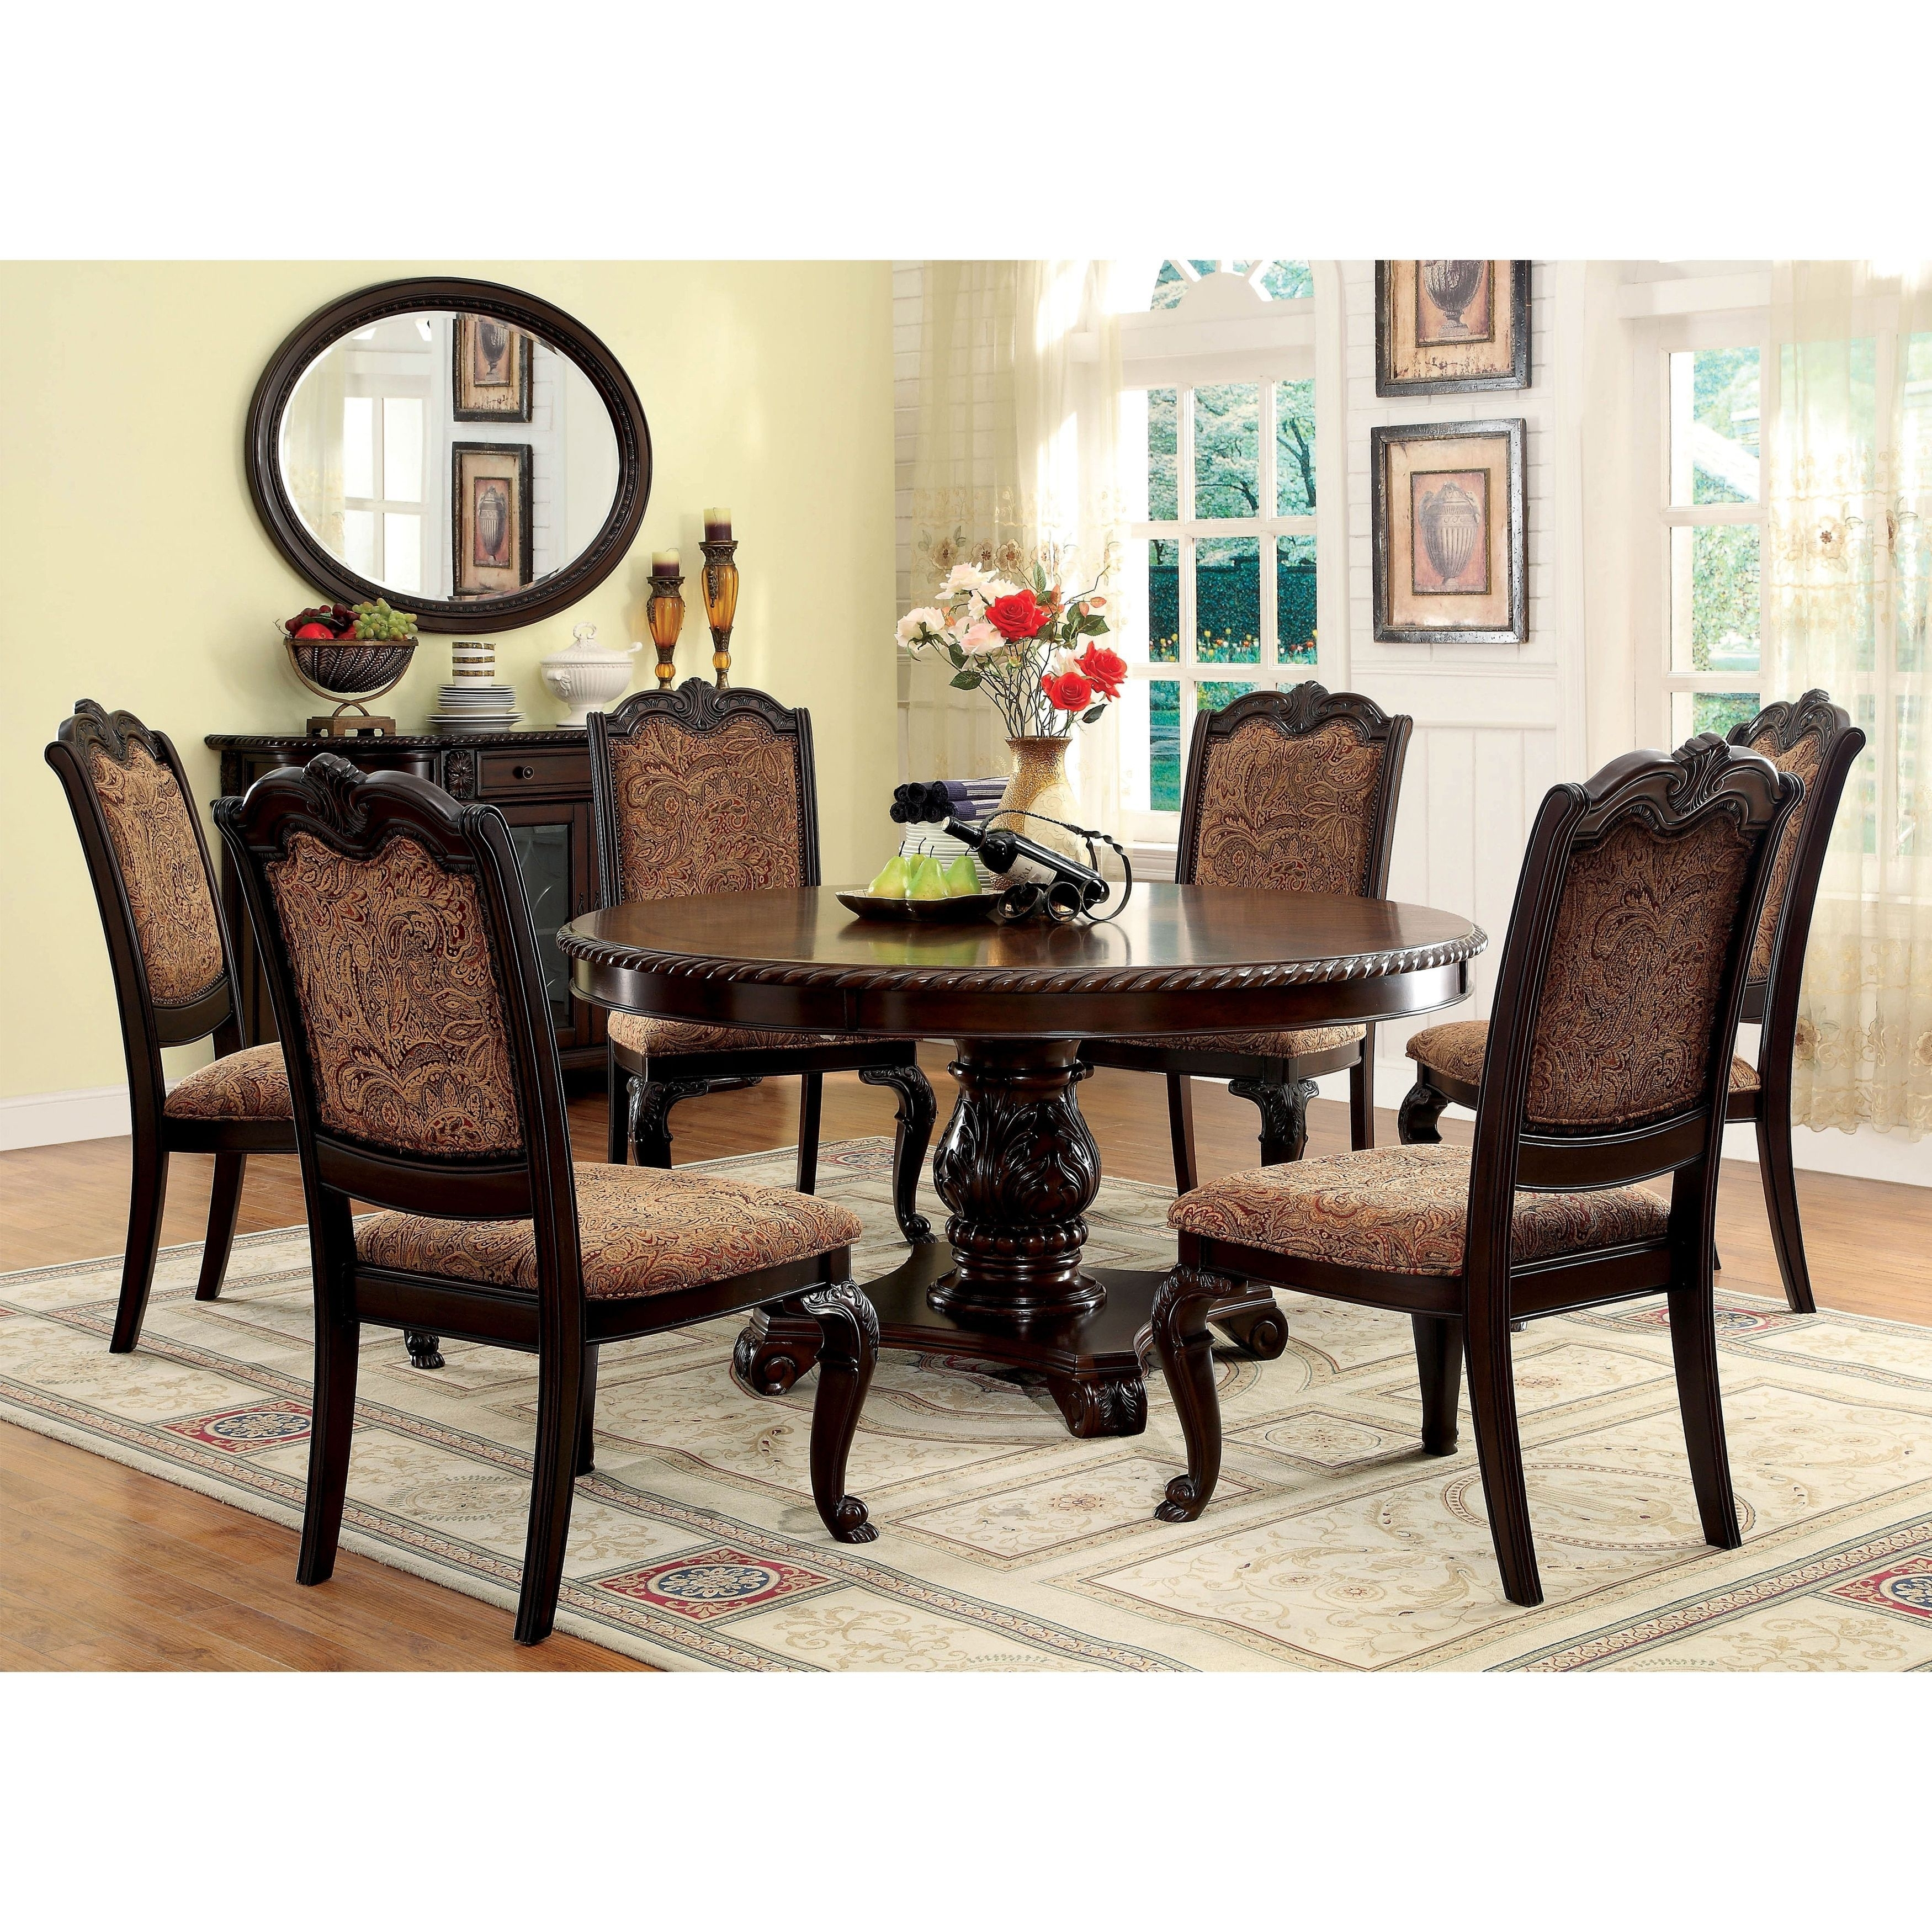 Furniture Of America Oskarre Iii Brown Cherry (Red) 7 Piece Formal Throughout 2017 Norwood 7 Piece Rectangular Extension Dining Sets With Bench, Host & Side Chairs (View 6 of 20)